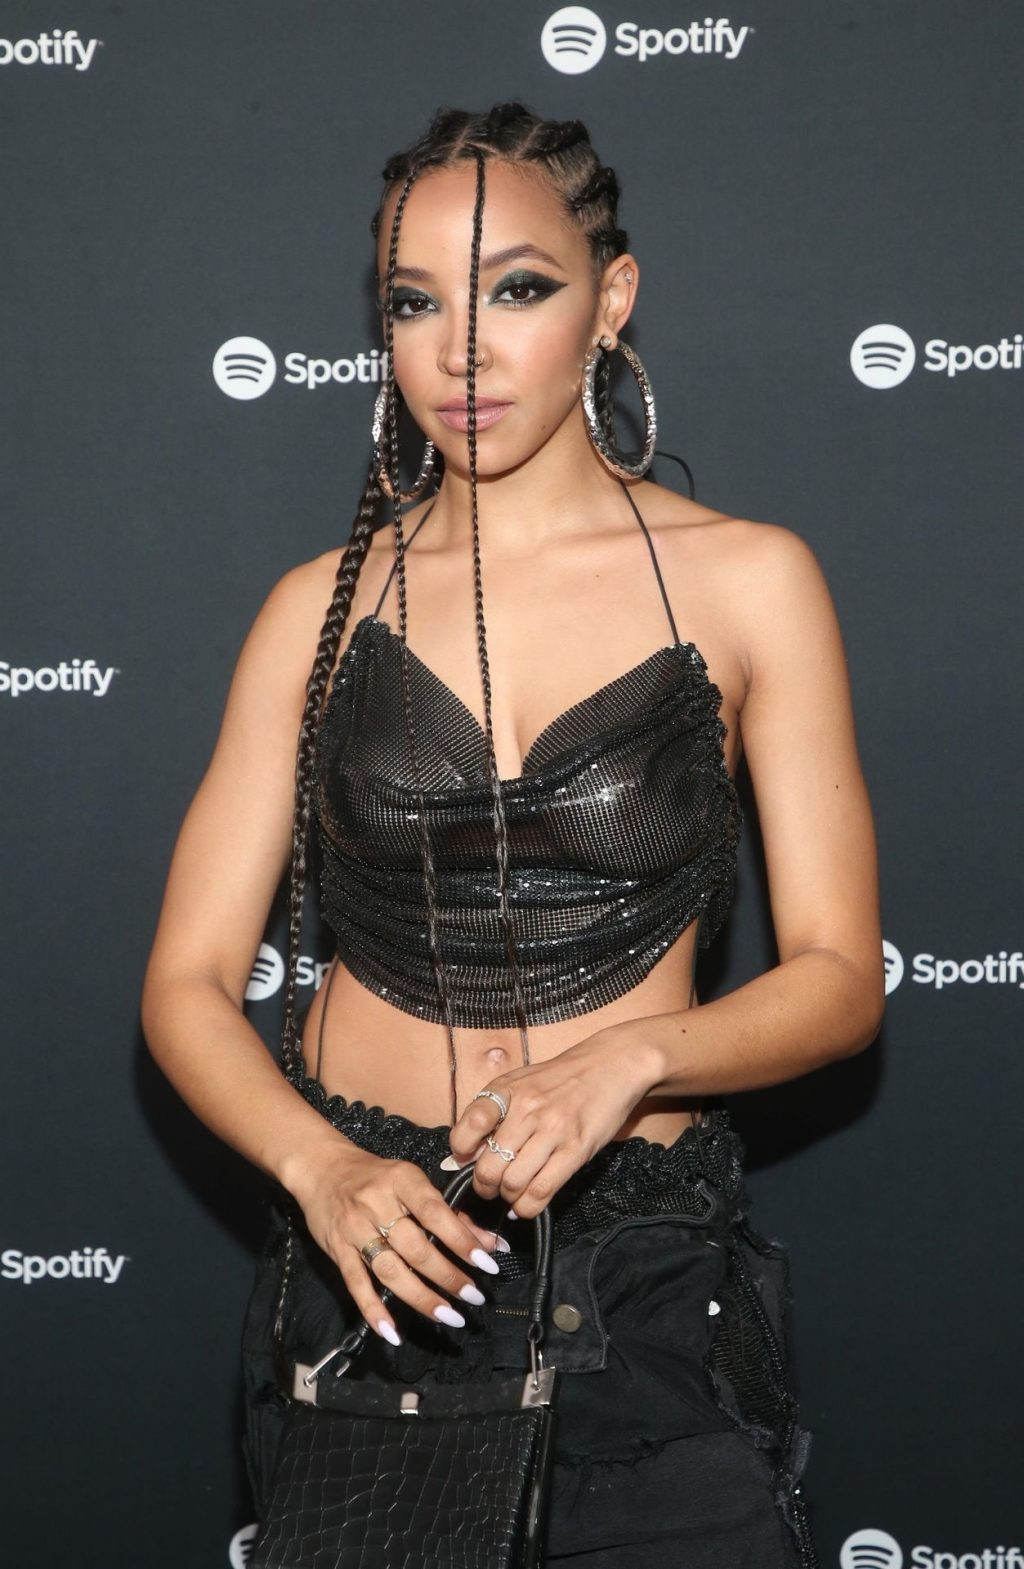 Tinashe Flaunts Her Tits at the Spotify Best New Artist Party (44 Photos)